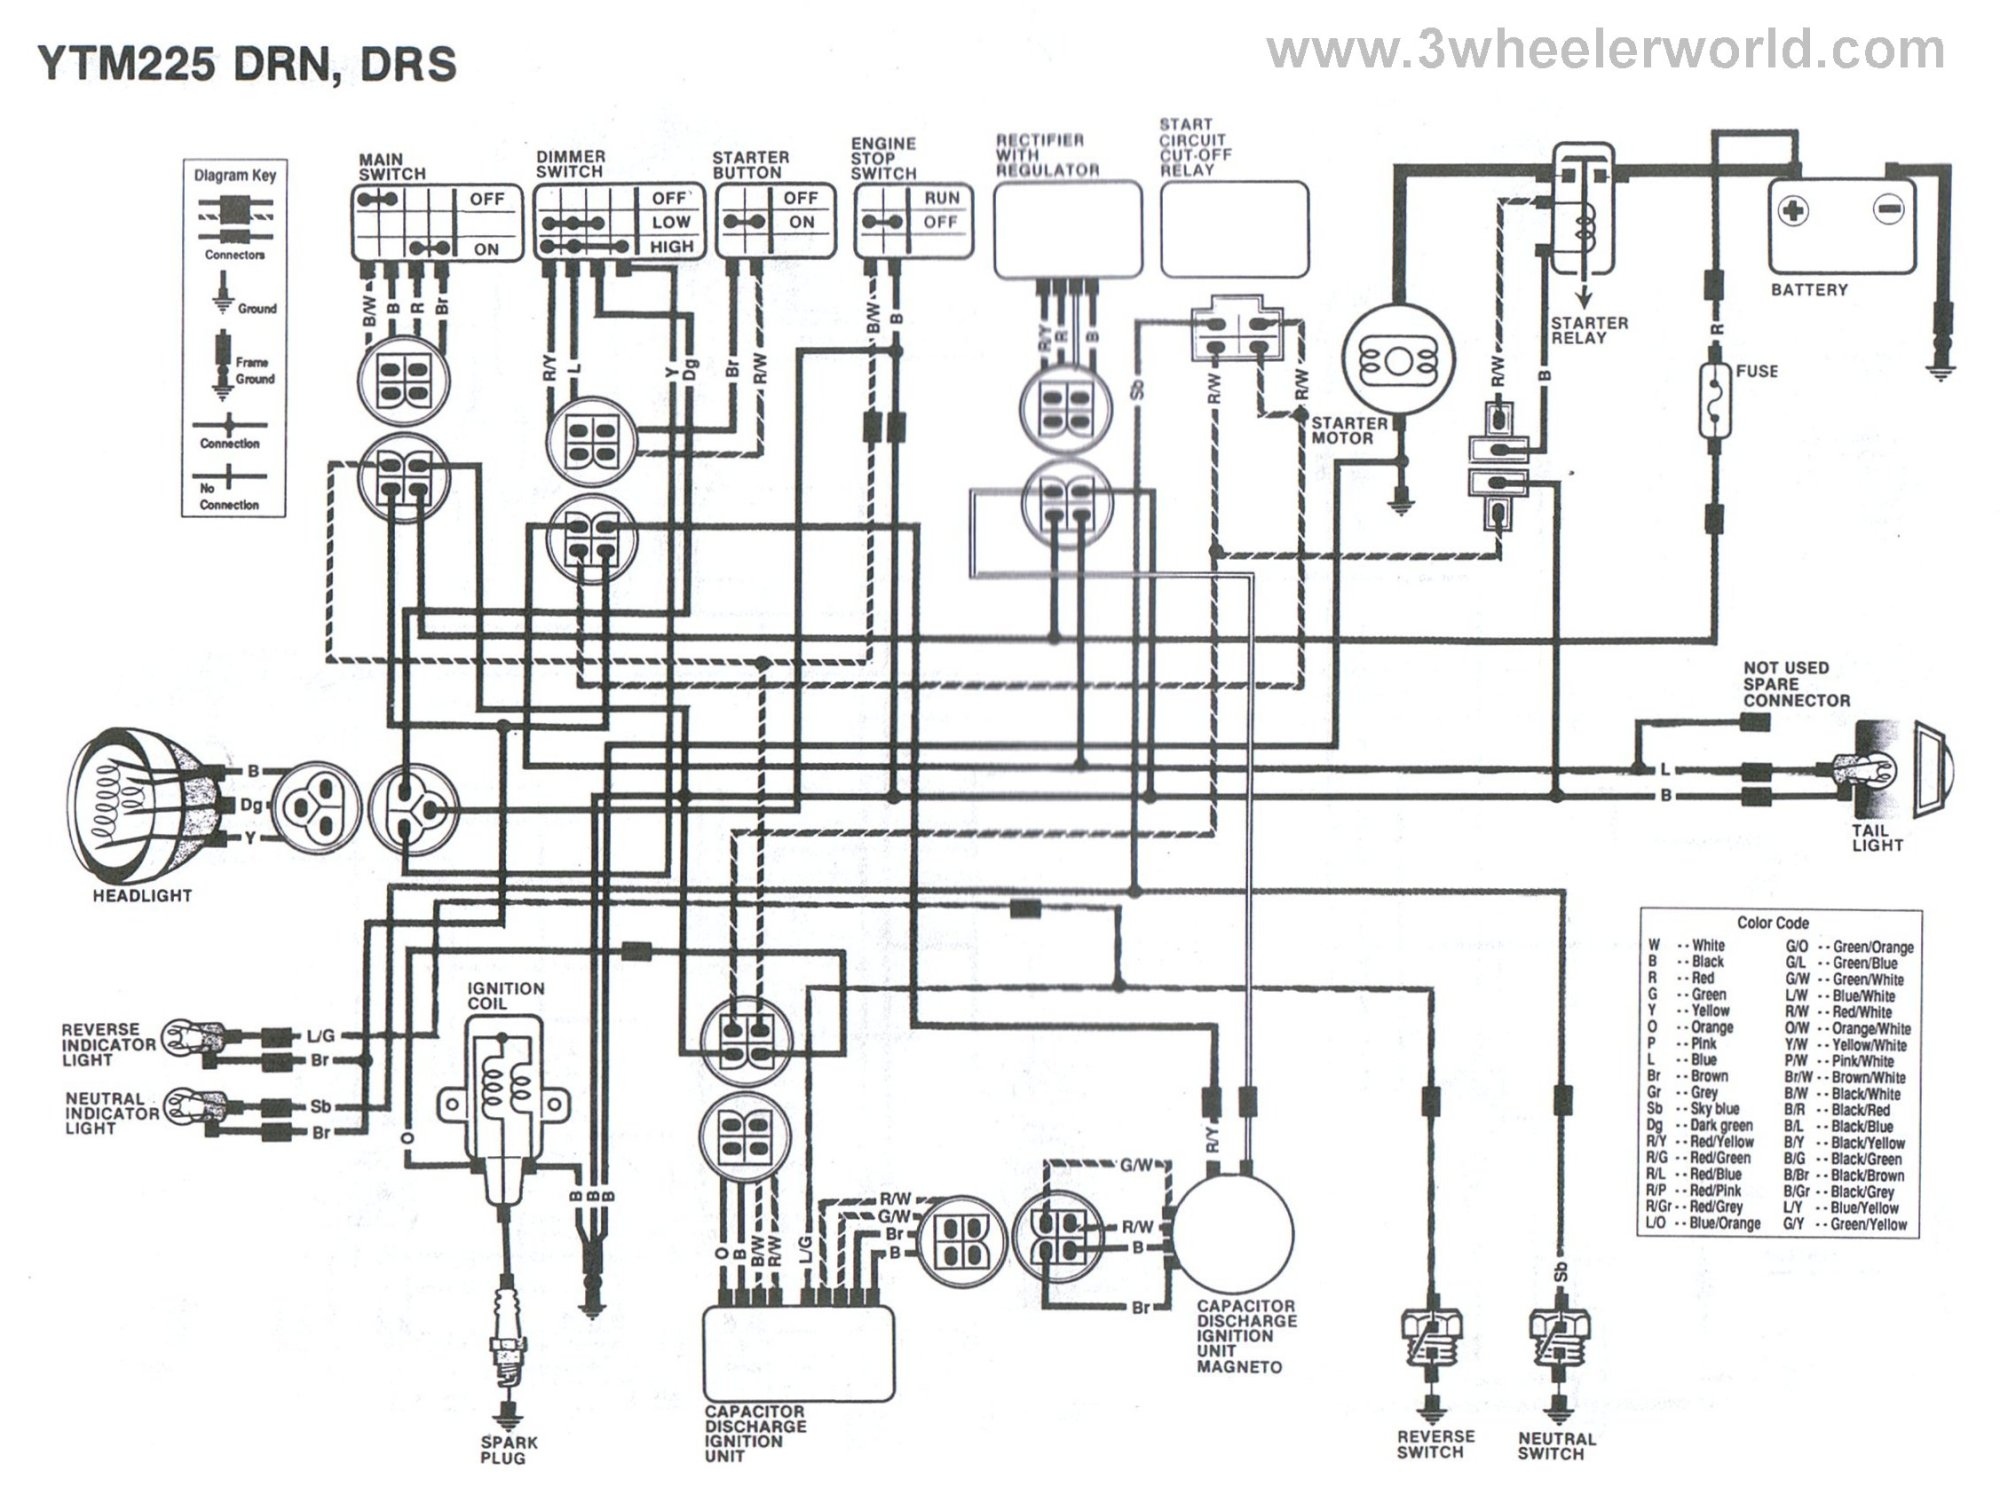 hight resolution of yamaha ttr 225 wiring diagram wiring diagram paper yamaha 225 dx wiring schmatic wiring diagram technic